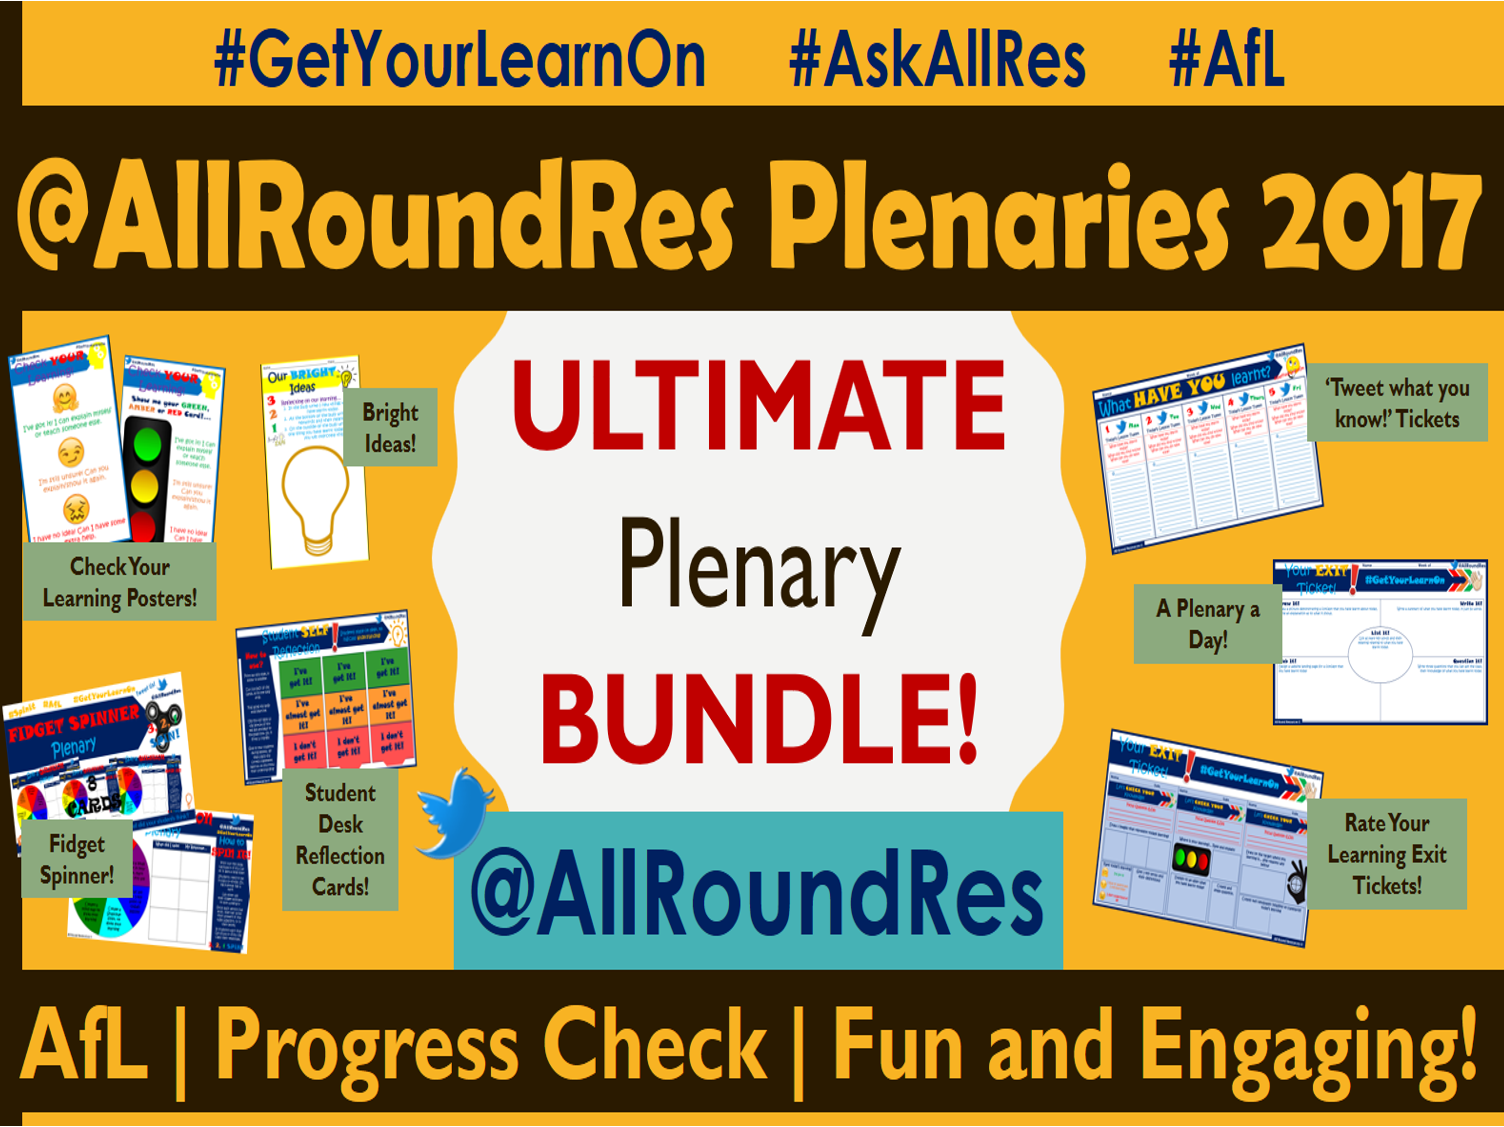 @AllRoundRes Plenary Activities 2017